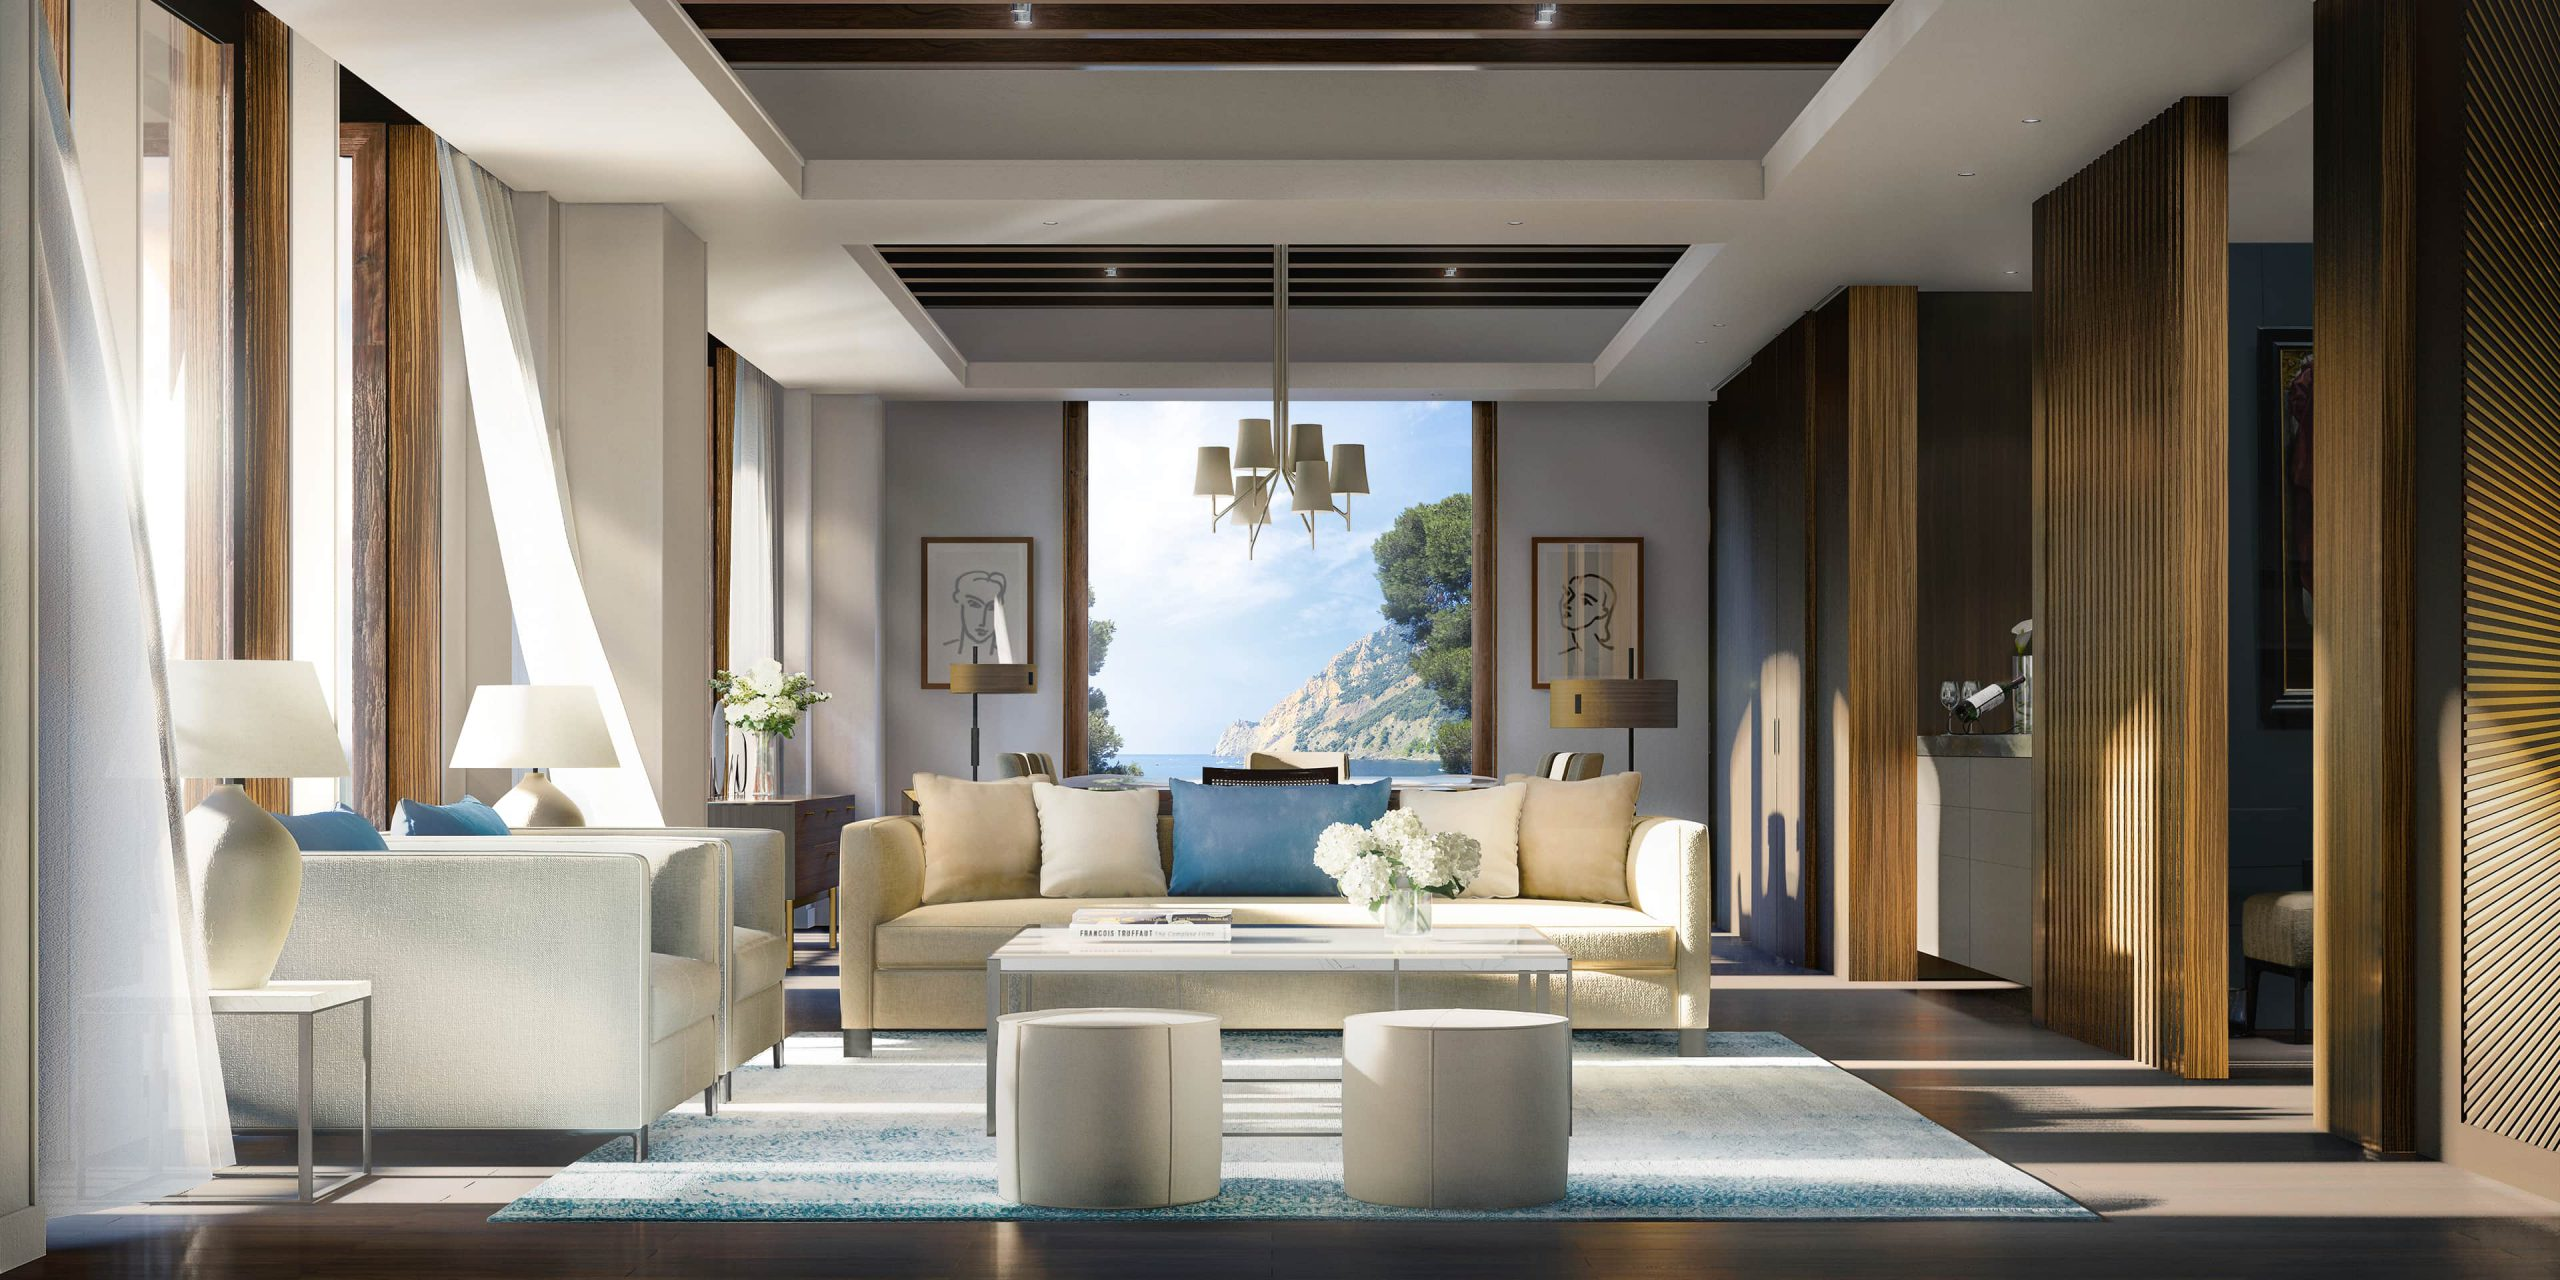 Living Room, Hotel Le Mas. Rendered in Lumion by Ten Over Media.